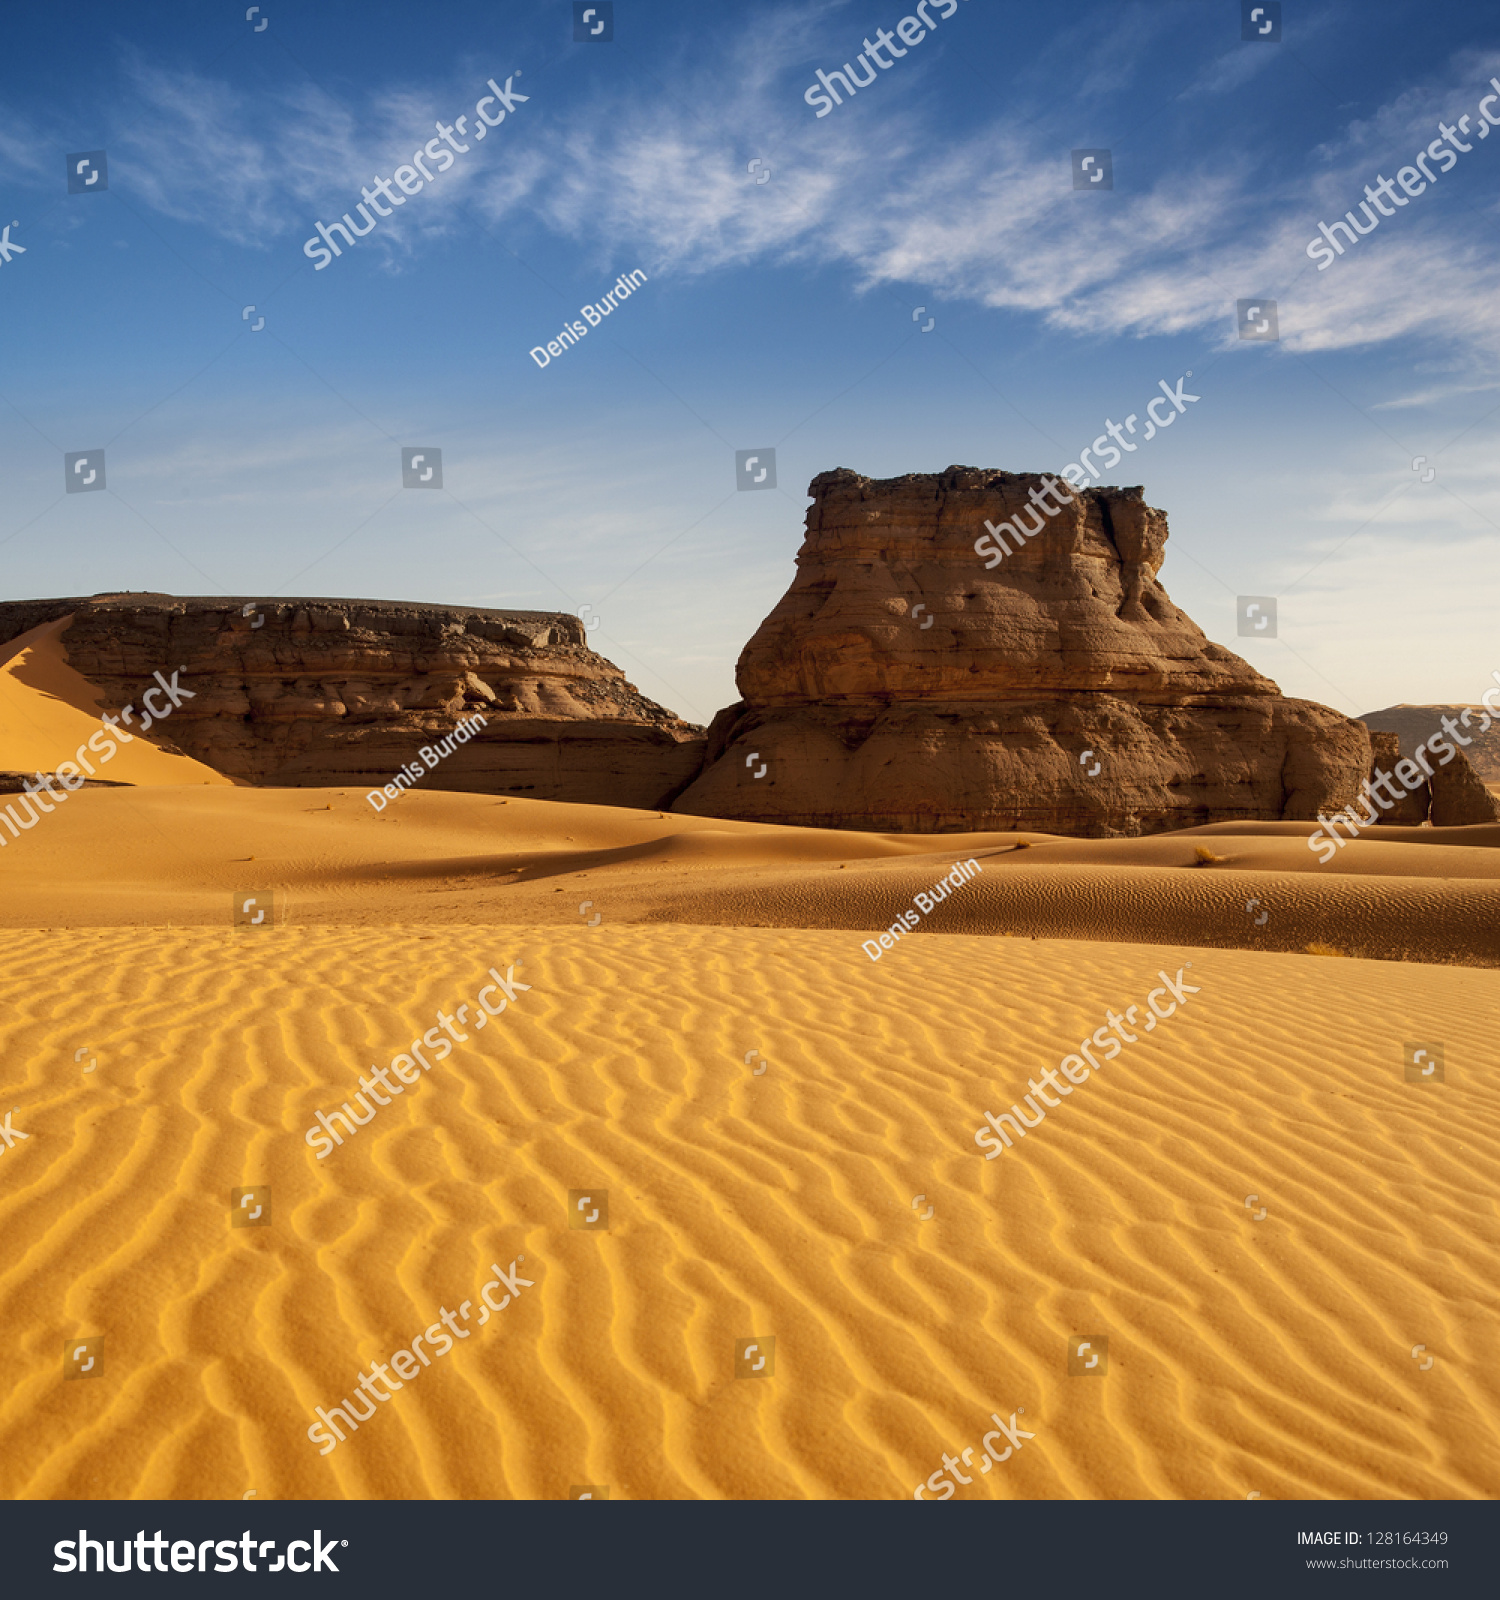 Image of: Dune The Libyan Desert Fantastic Place For Travelers And Photographers Rocks Of An Unusual Shutterstock Libyan Desert Fantastic Place Travelers Photographers Stock Photo